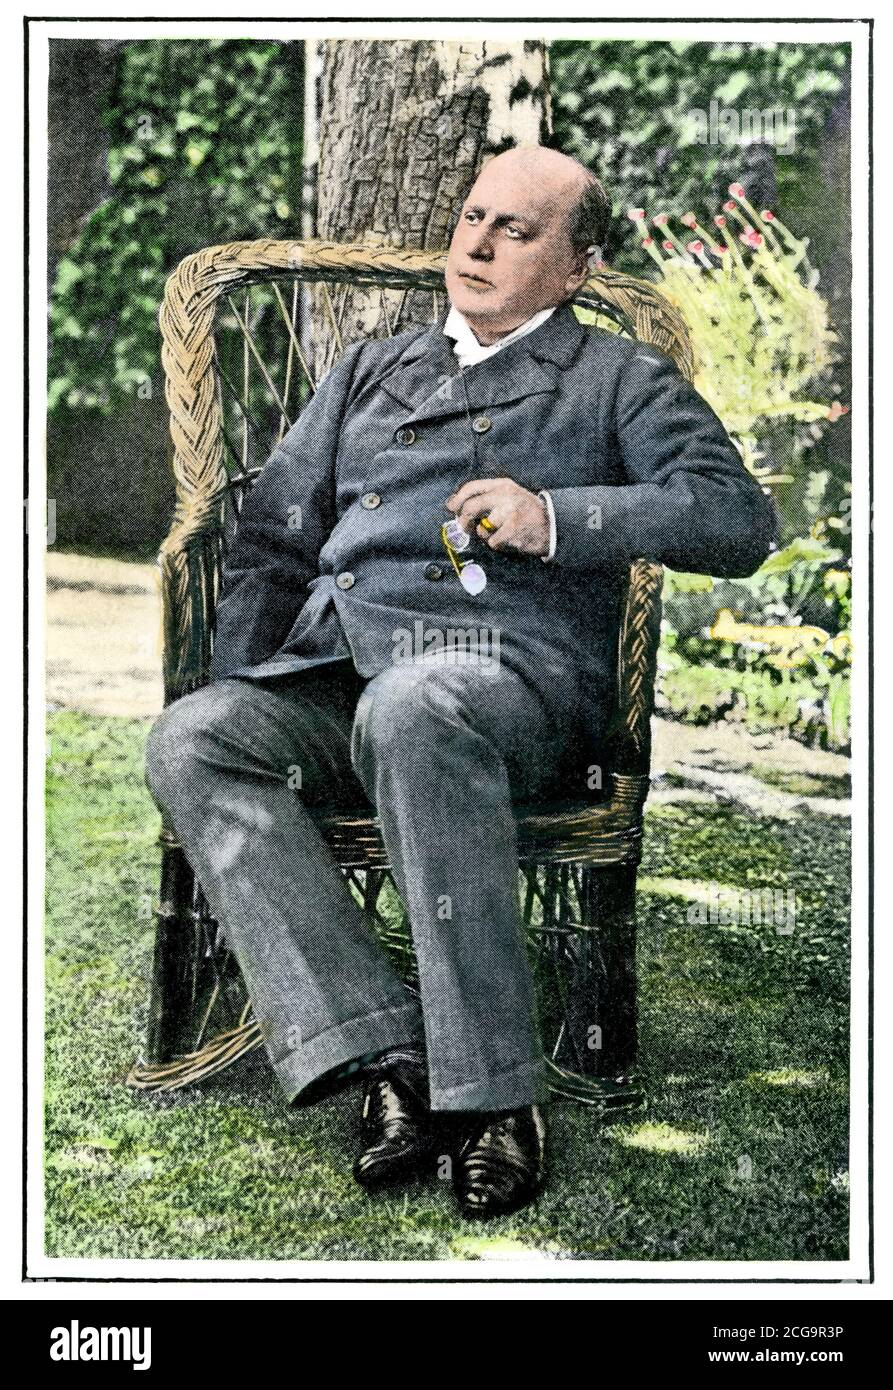 Henry James in the garden of his home, Rye UK, 1903. Hand-colored halftone of a photograph Stock Photo